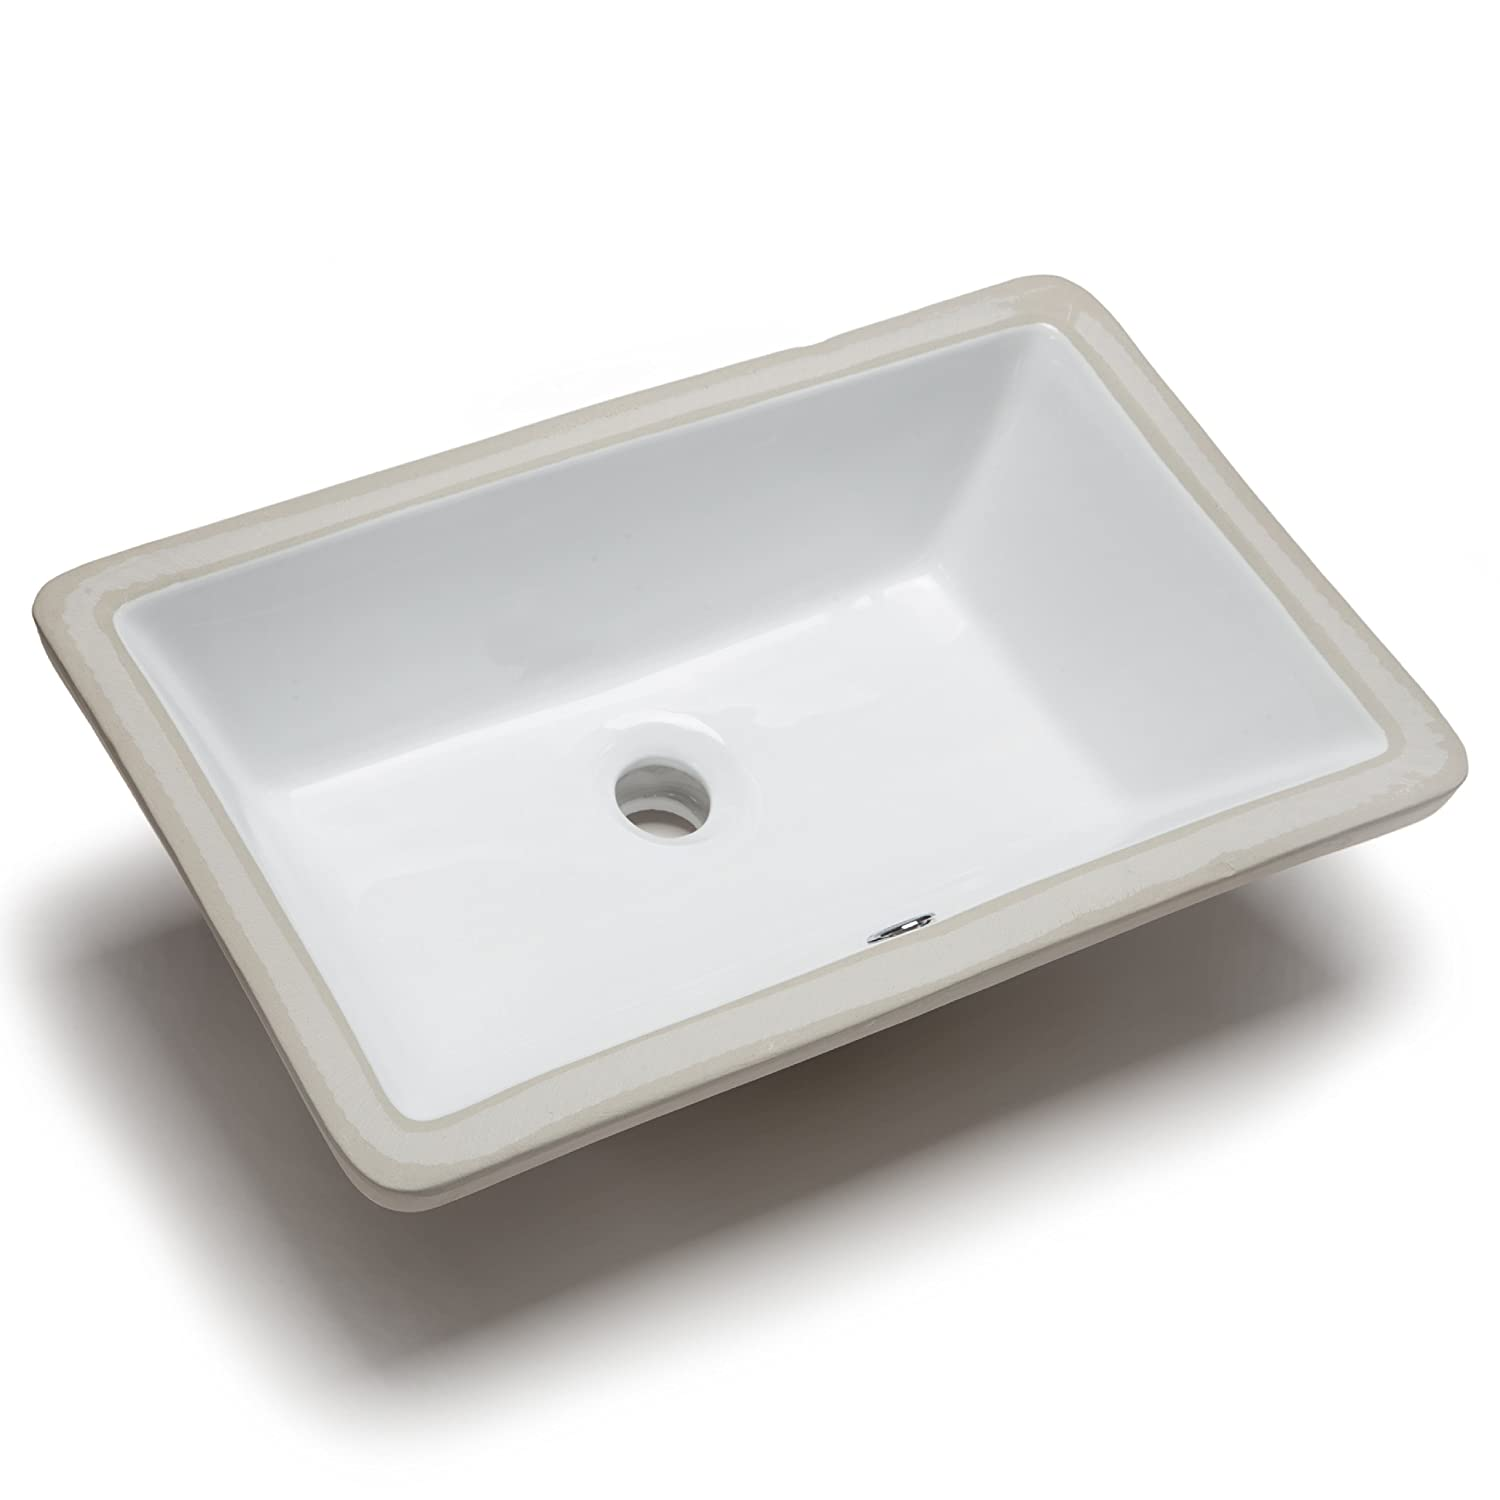 Rectangular Bathroom Sinks Hahn Ceramic Vc014 Medium Rectangular Ceramic Bathroom Sink White